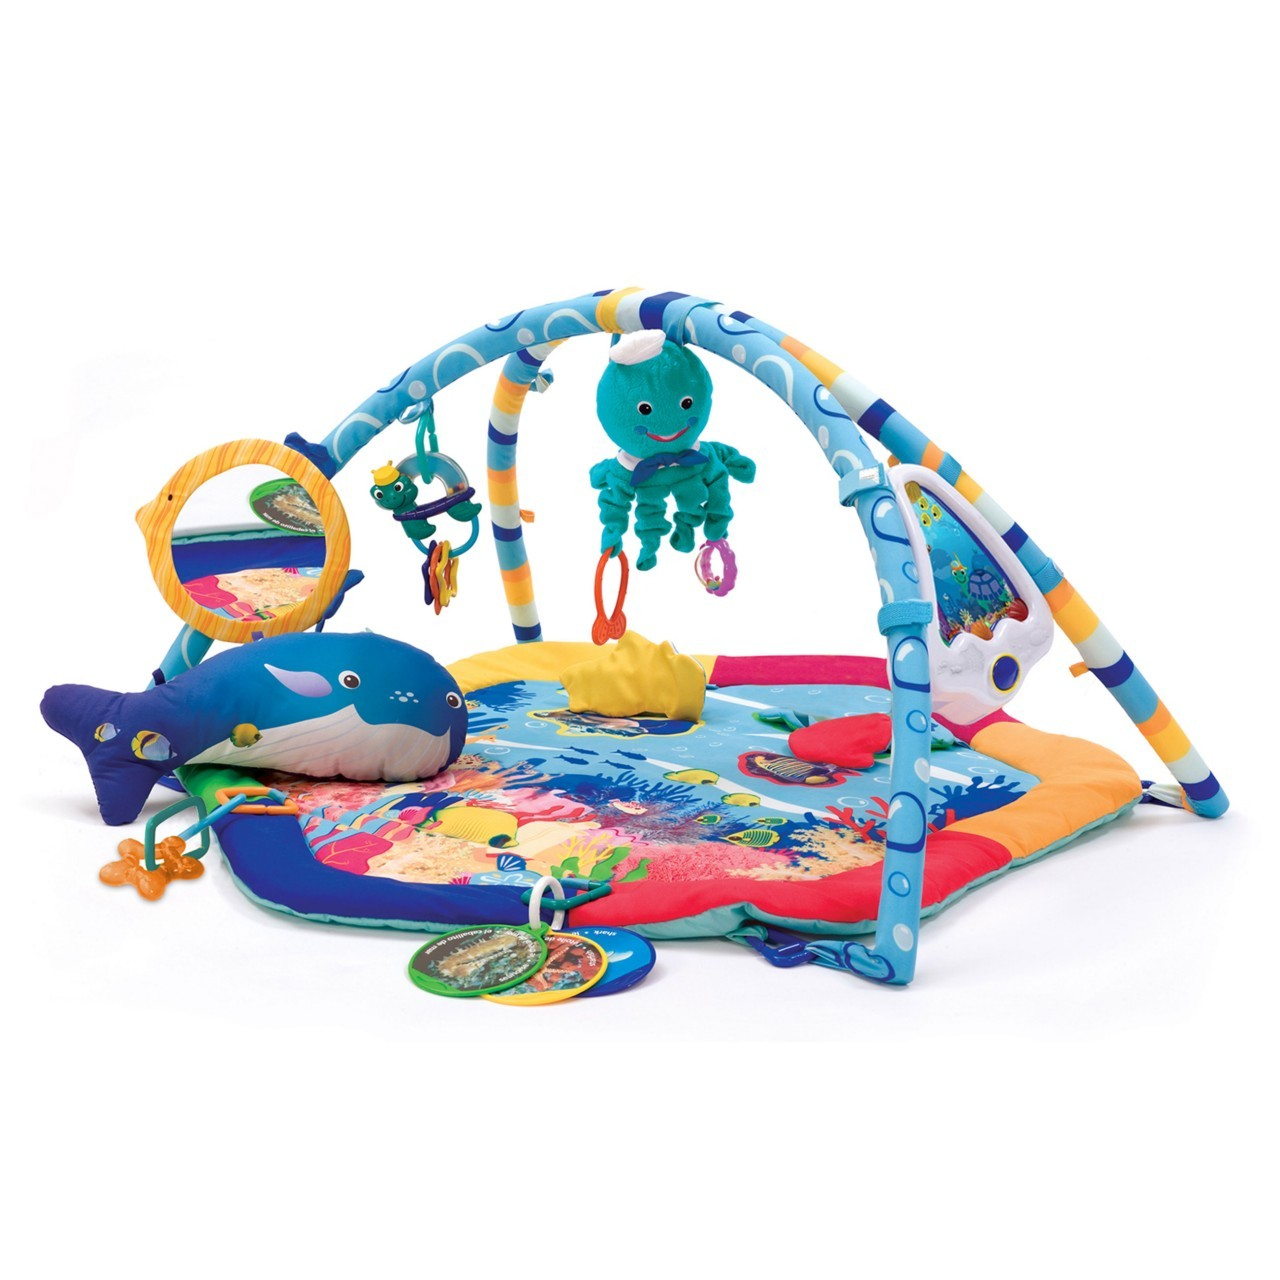 Baby Einstein 3 In 1 Jumper And Activity Mat Colors Of The Ocean Ultimate Baby Registry Guide The Journey Of Parenthood